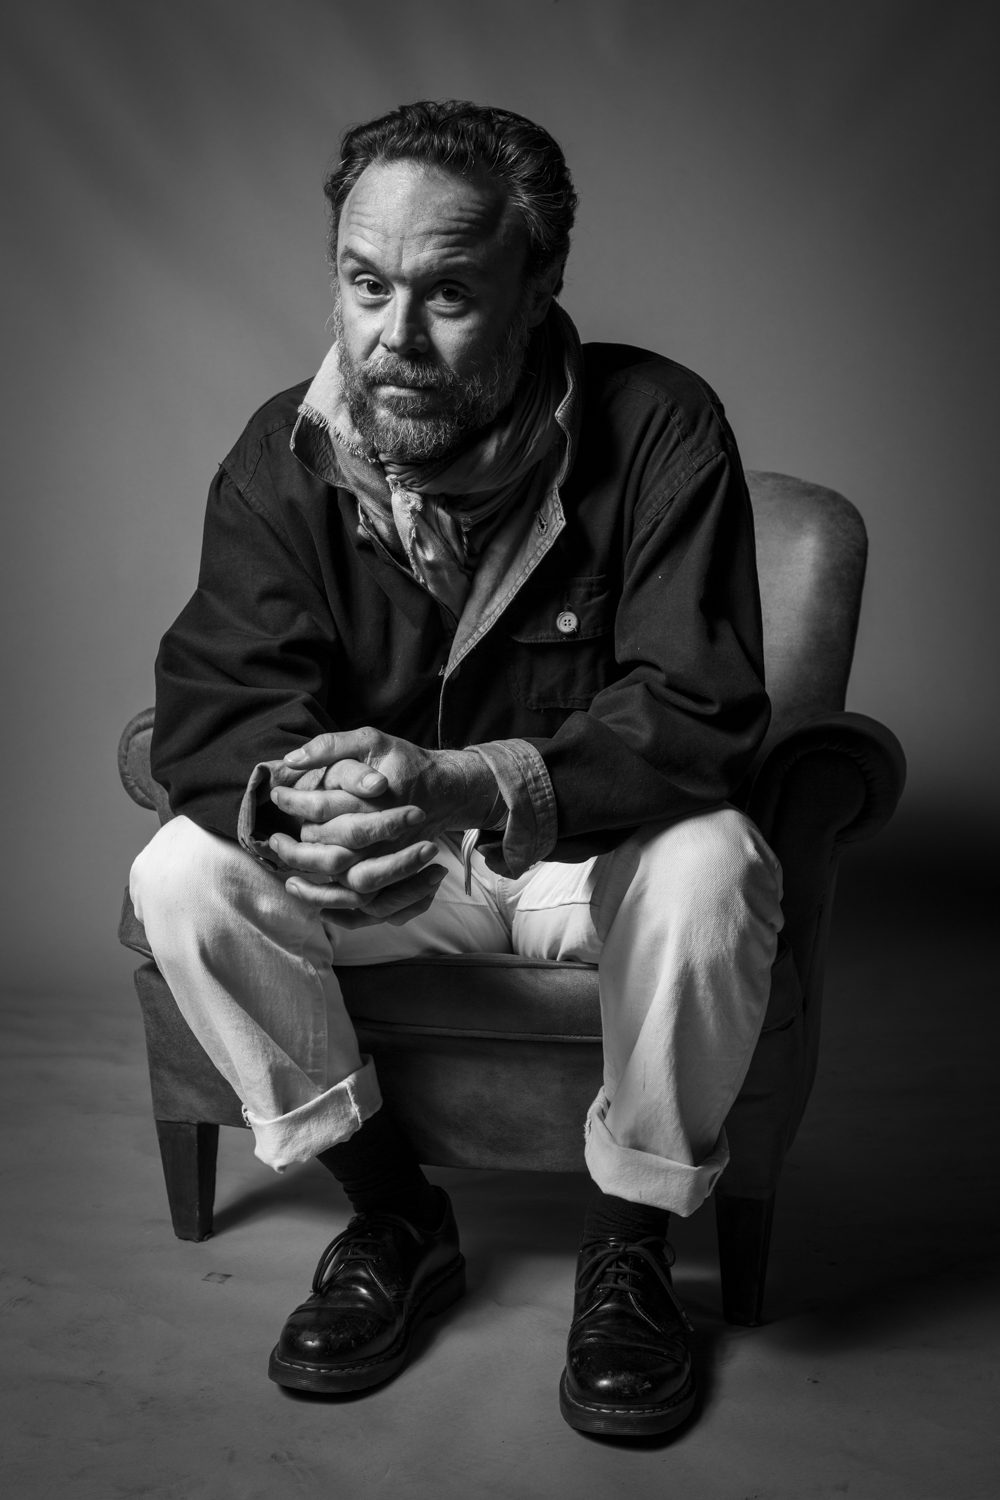 Rodrigo Amarante, singer and songwriter